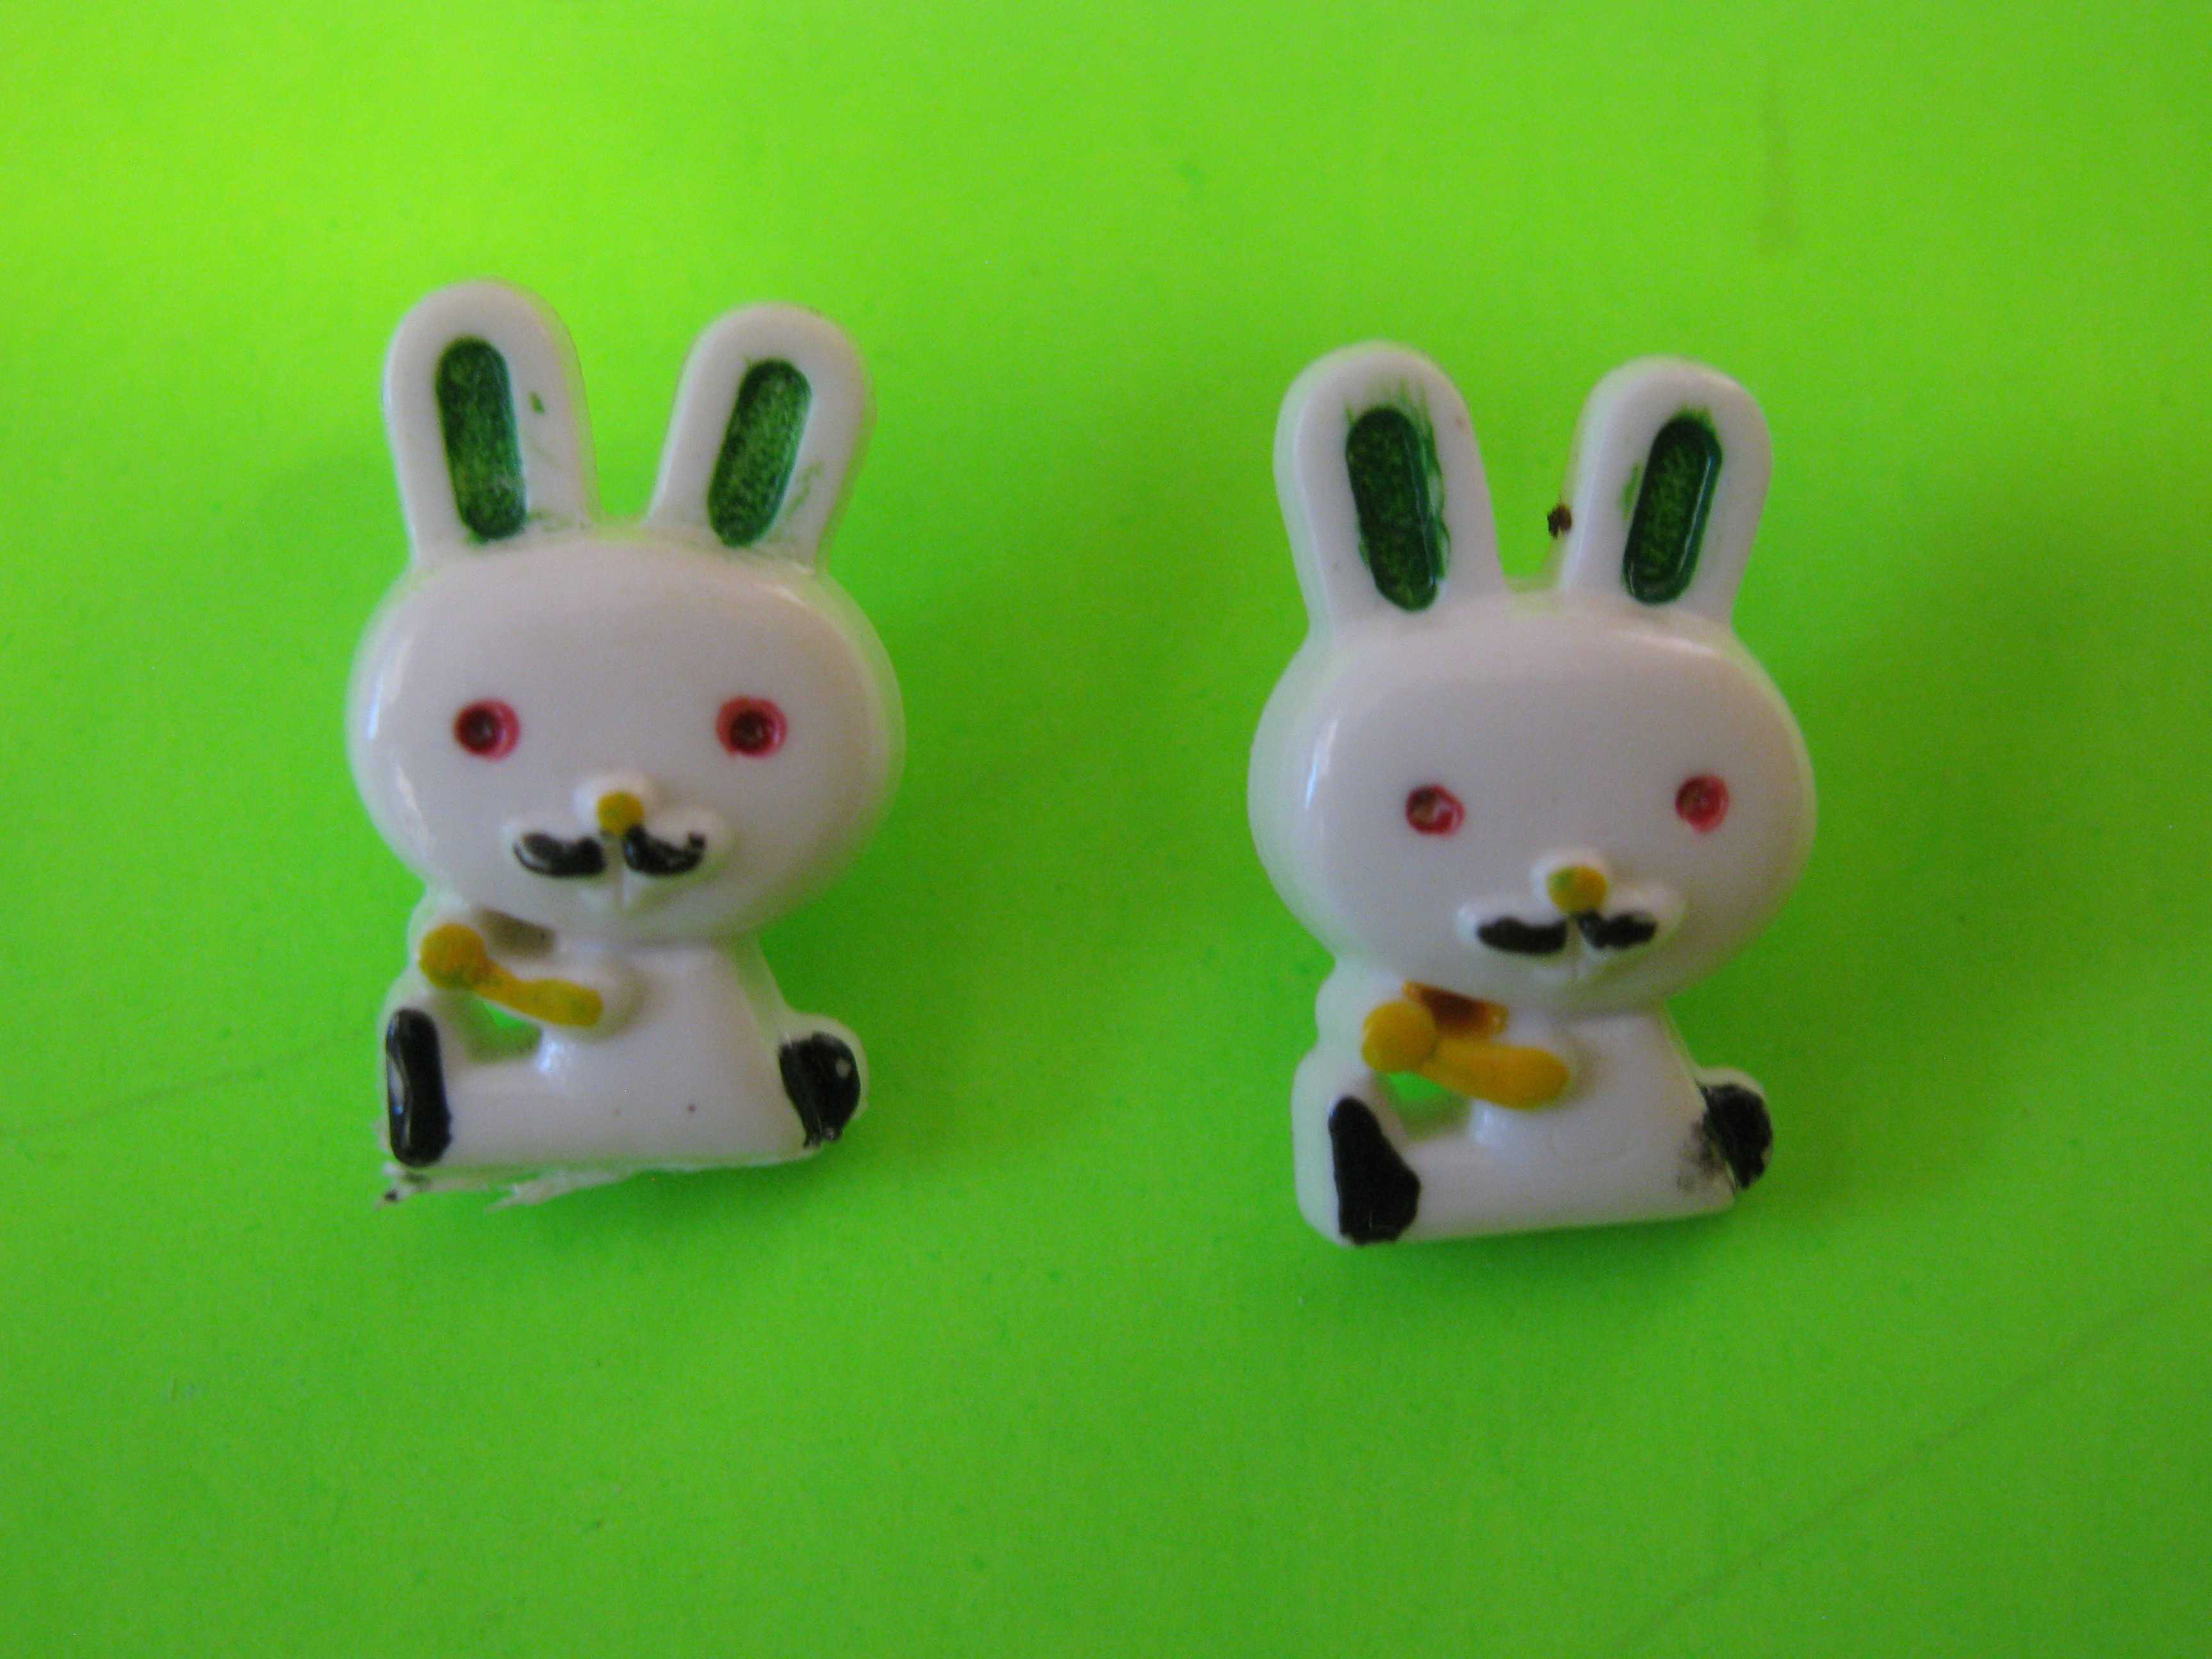 Vintage Cartoon Style Bunny Rabbits, Plastic with Look Shanks